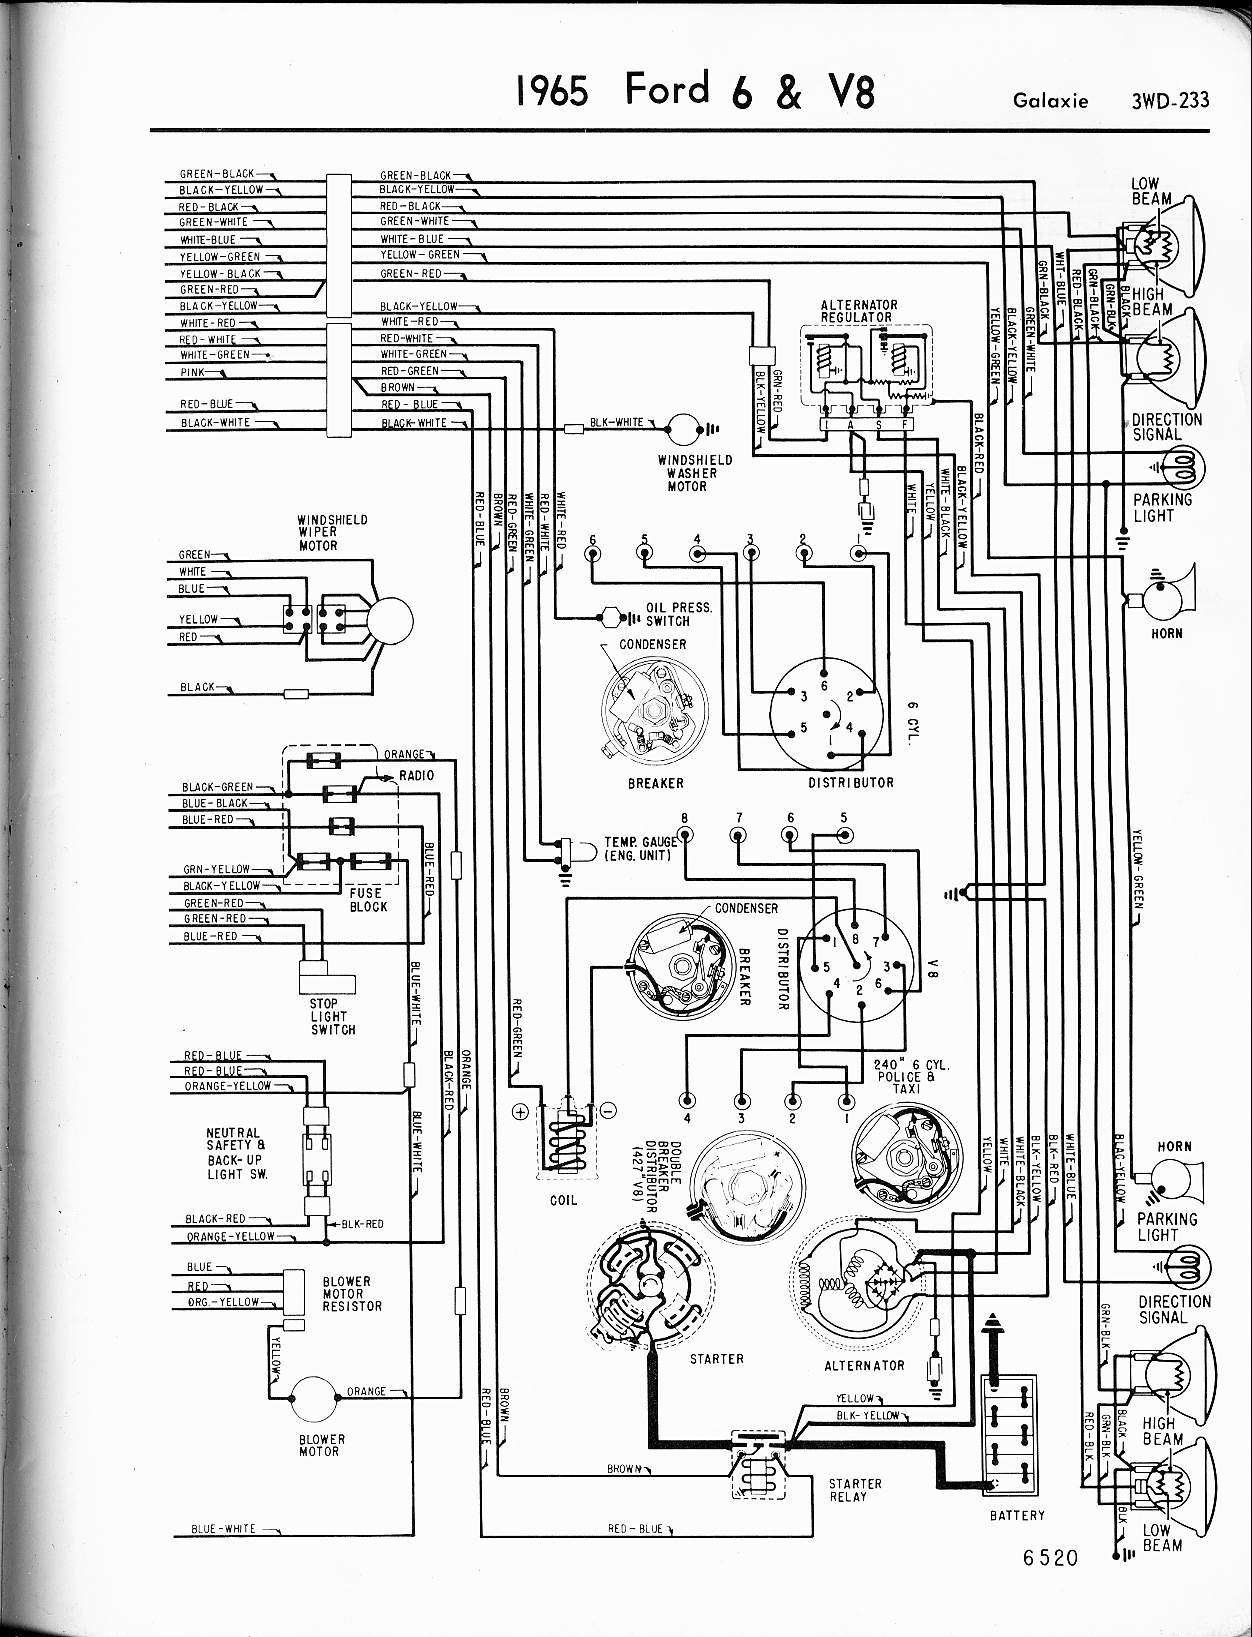 ford gen wiring diagram 1965 - fusebox and wiring diagram symbol-drop -  symbol-drop.coroangelo.it  coroangelo.it